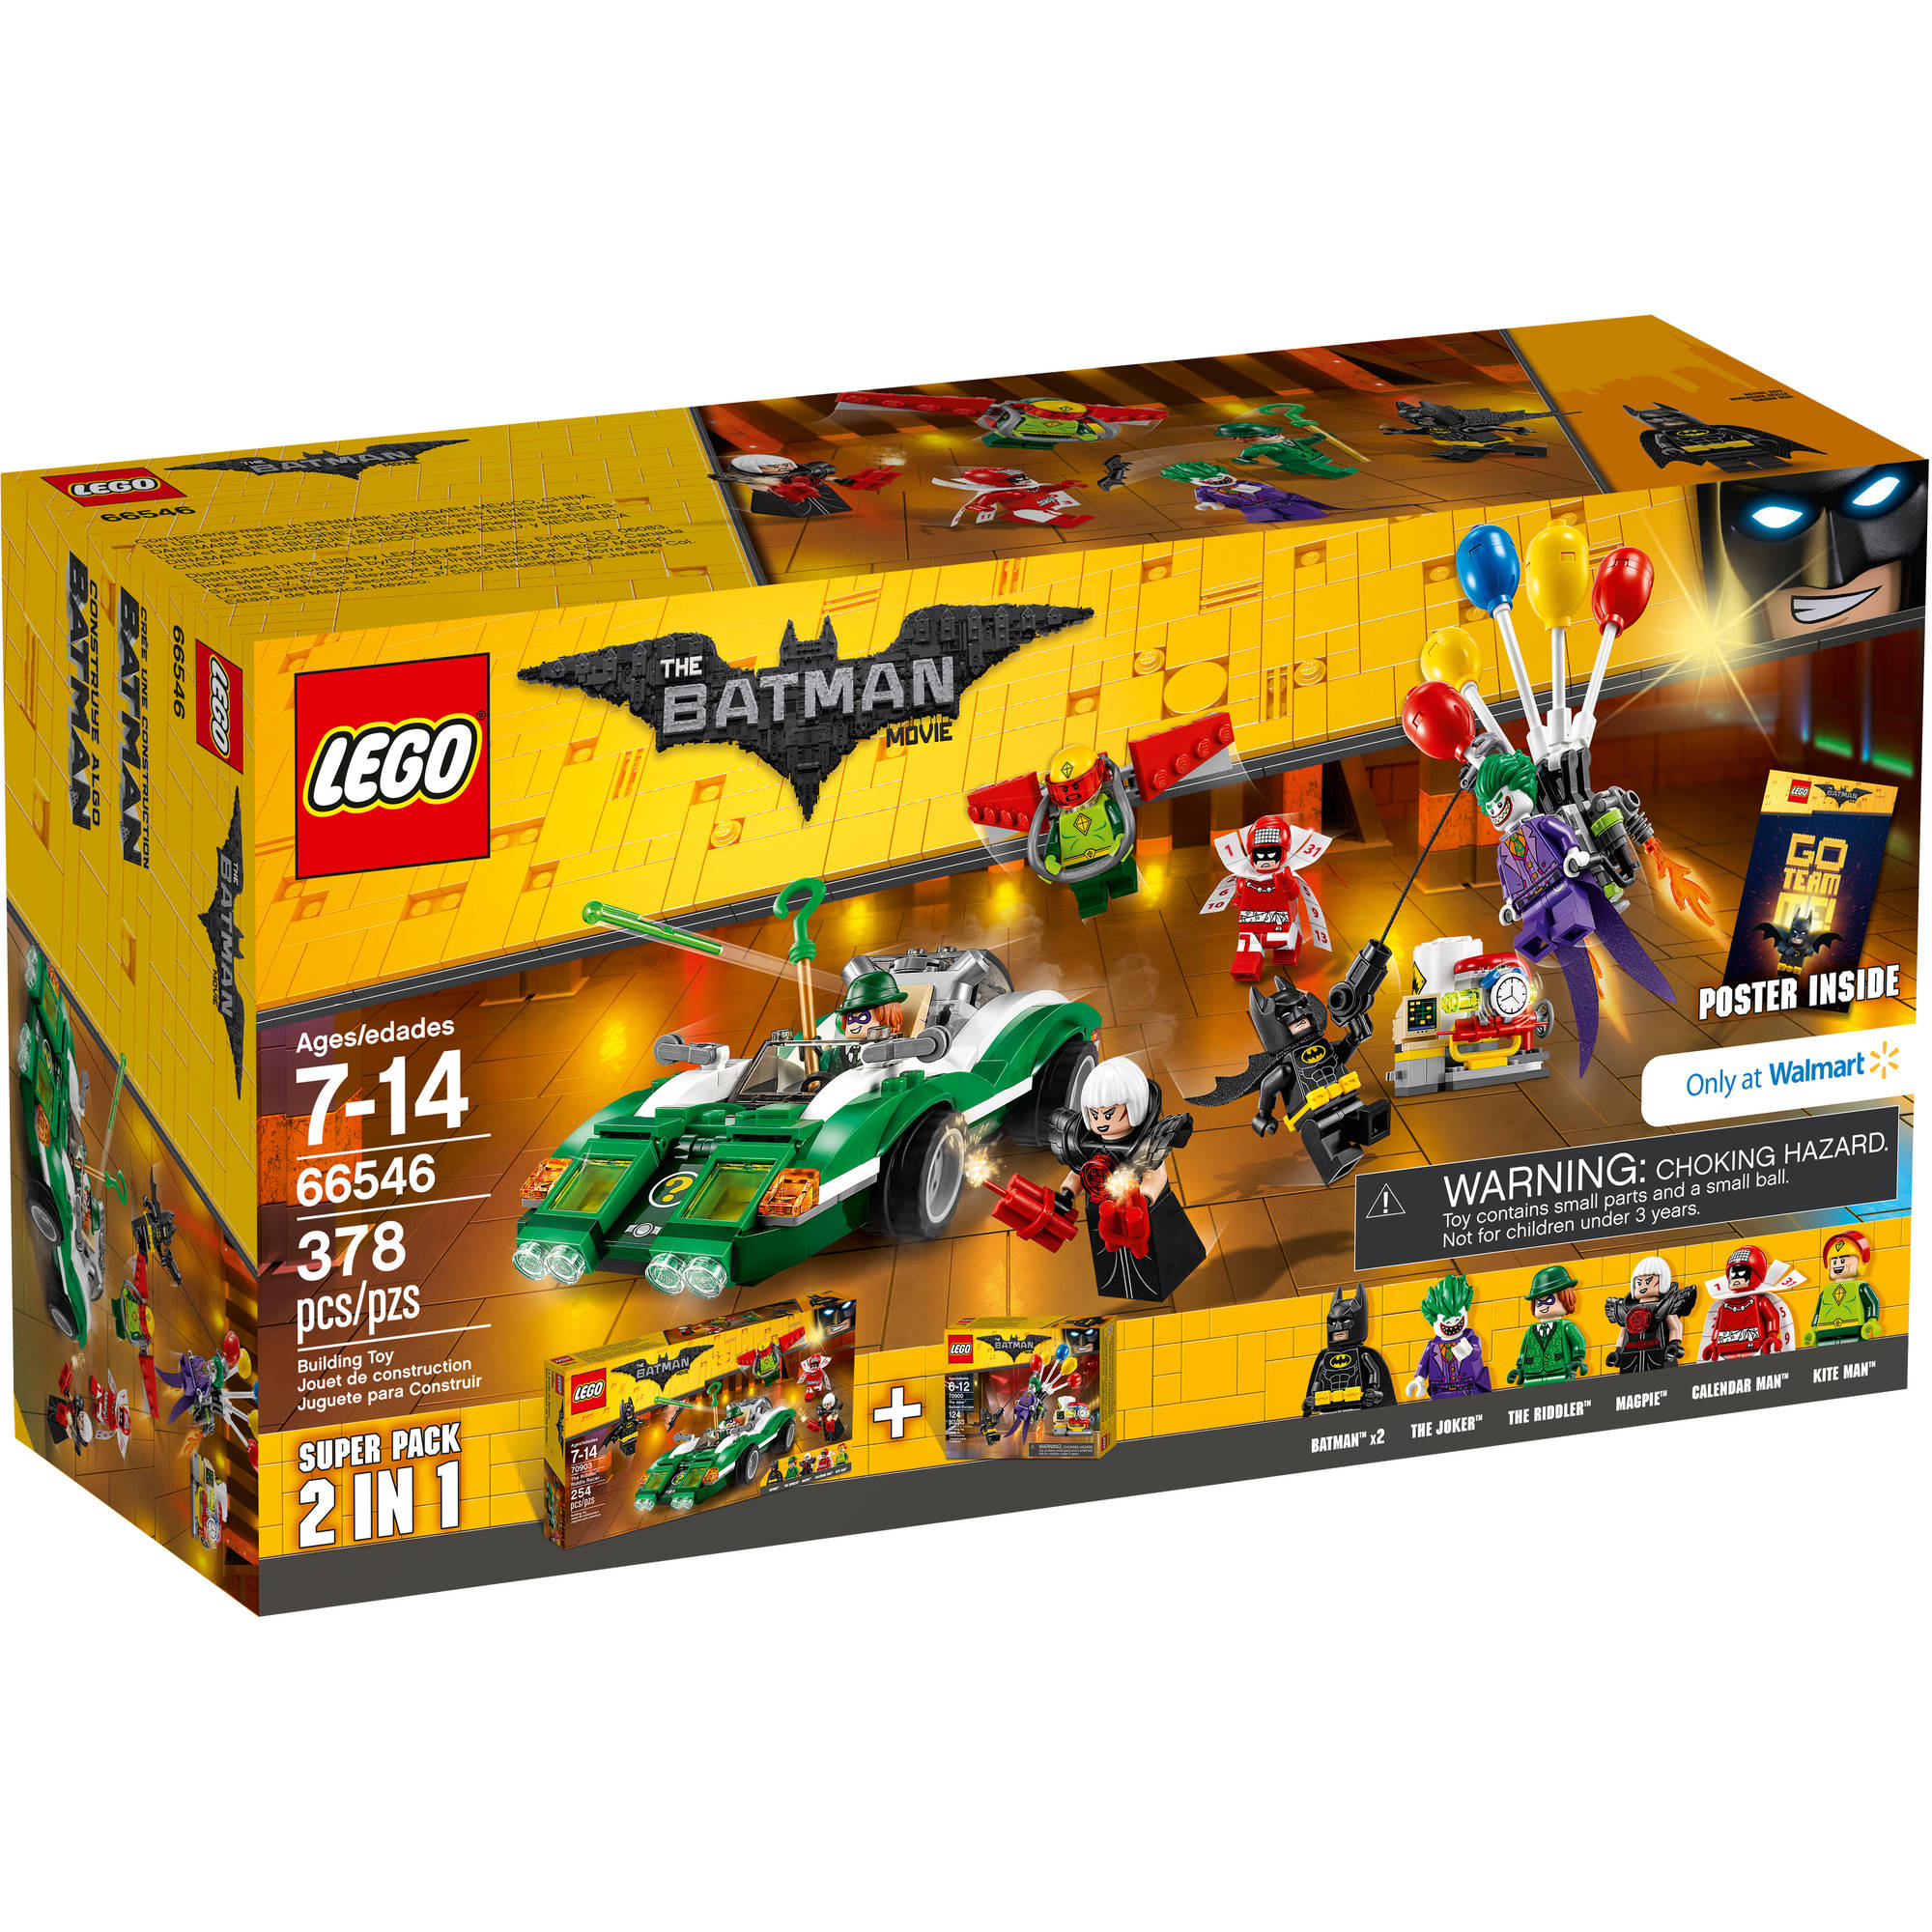 The LEGO Batman Movie - Copack (66546) The Joker Balloon Escape ...